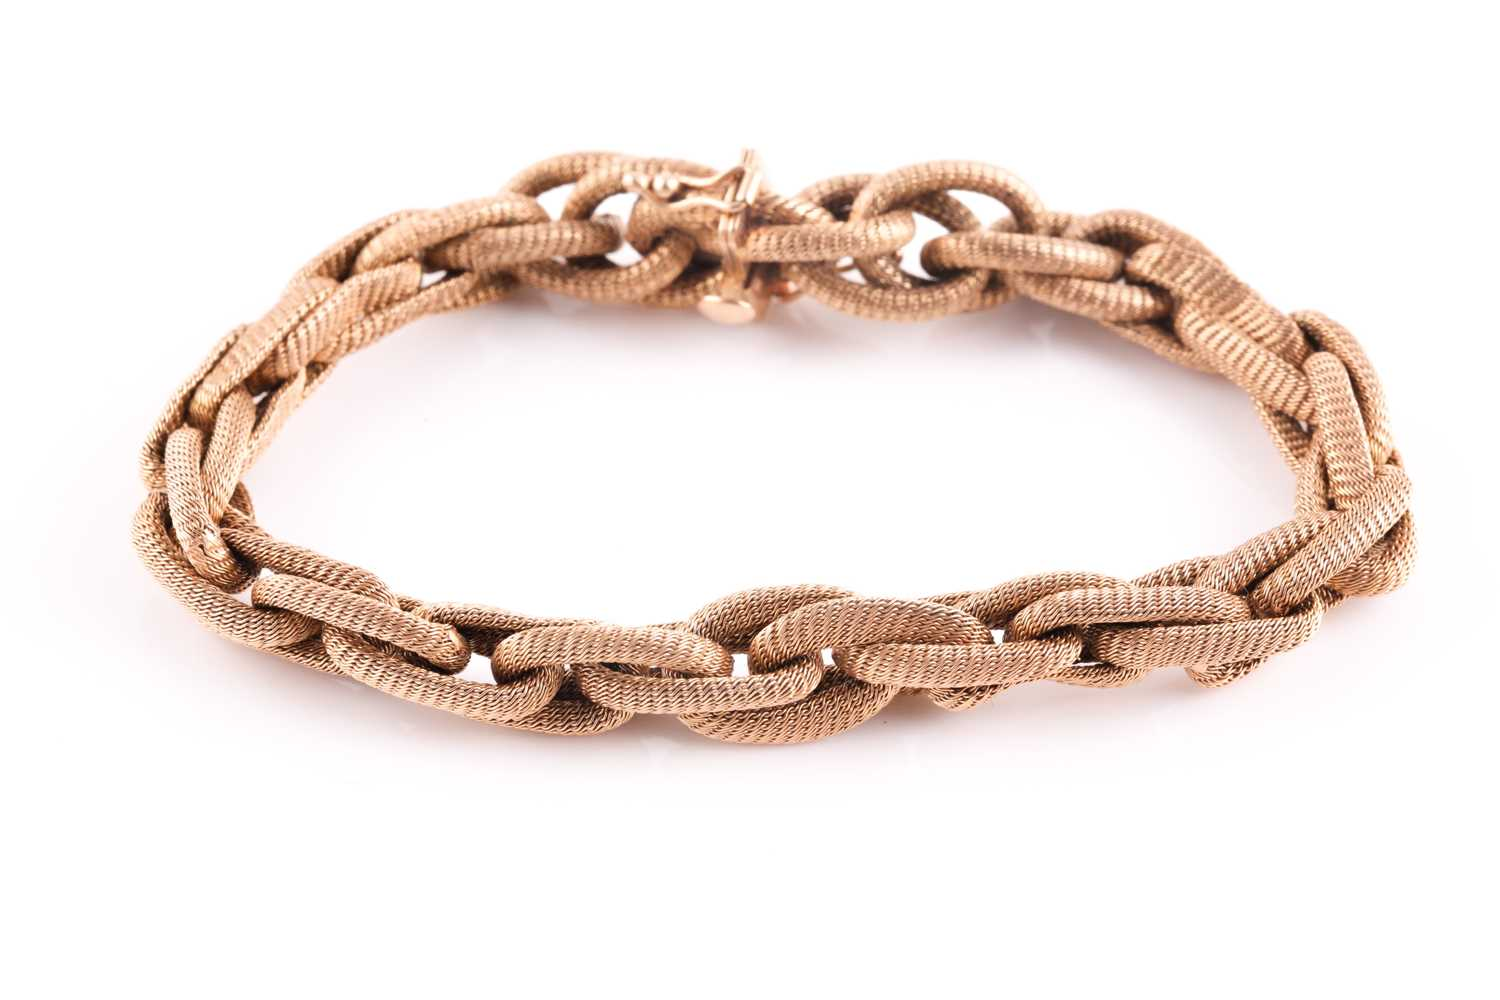 A late 19th / early 20th century 18ct yellow gold mesh-link bracelet, comprised of rope-twist oval